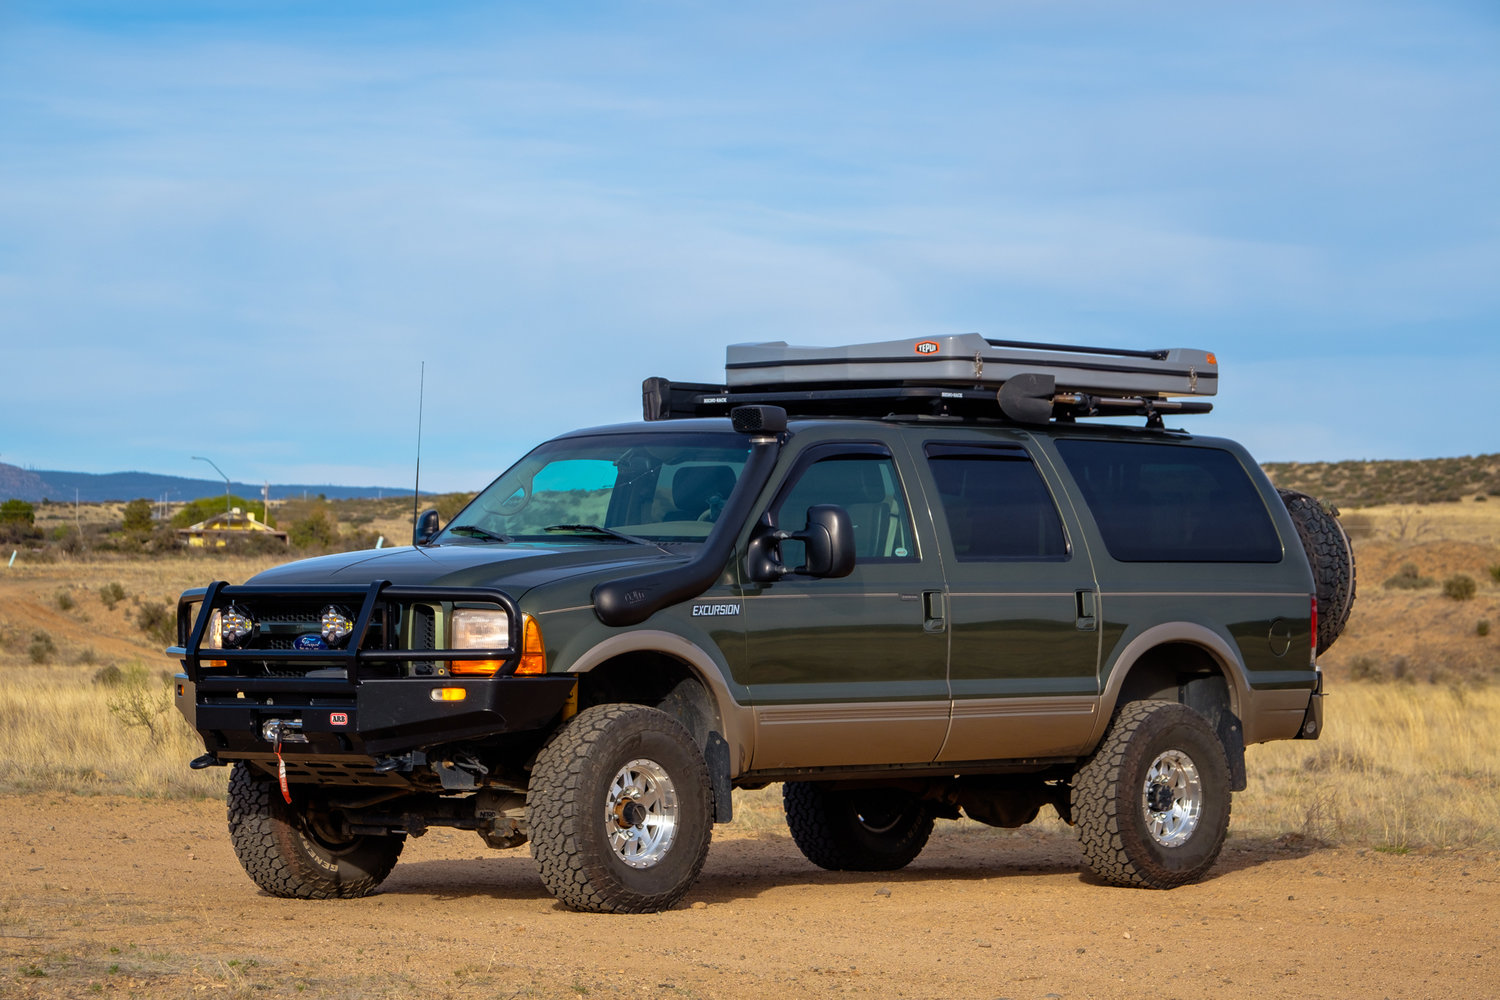 For Sale Expo S Diesel Excursion Project Overland Kitted